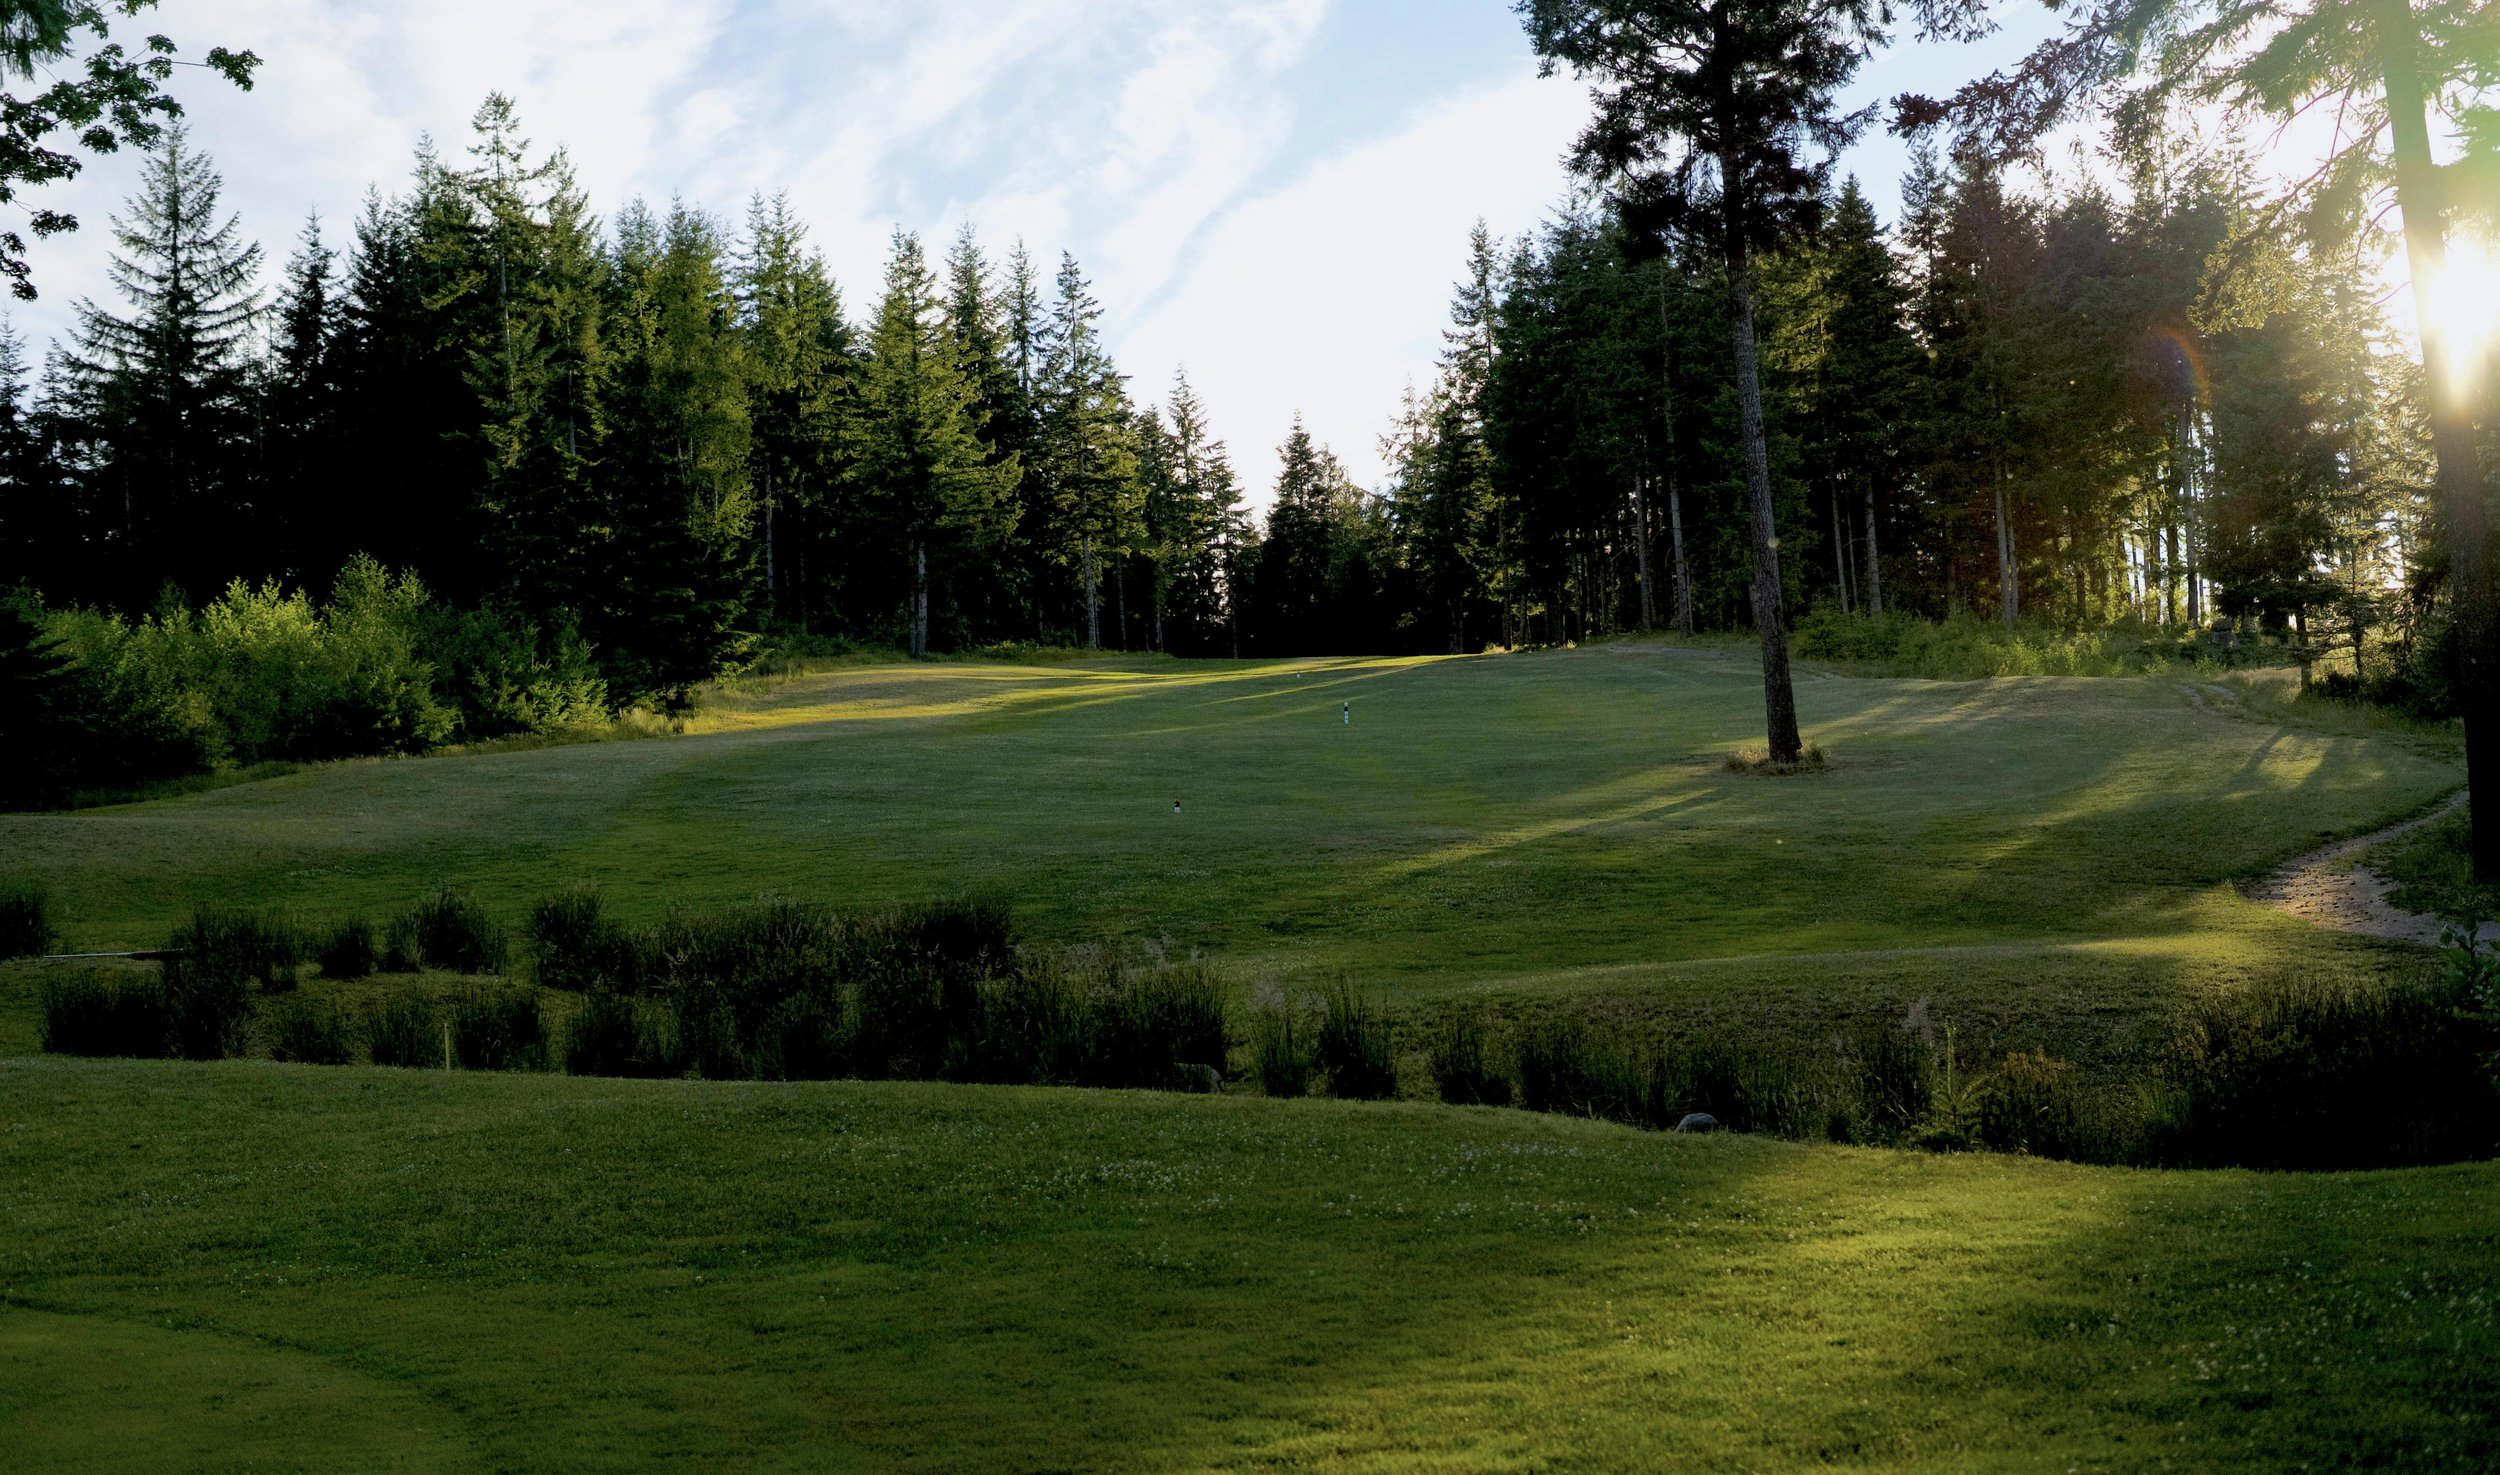 QuadraGolf_Hole6_fairway_DSC00480.jpg